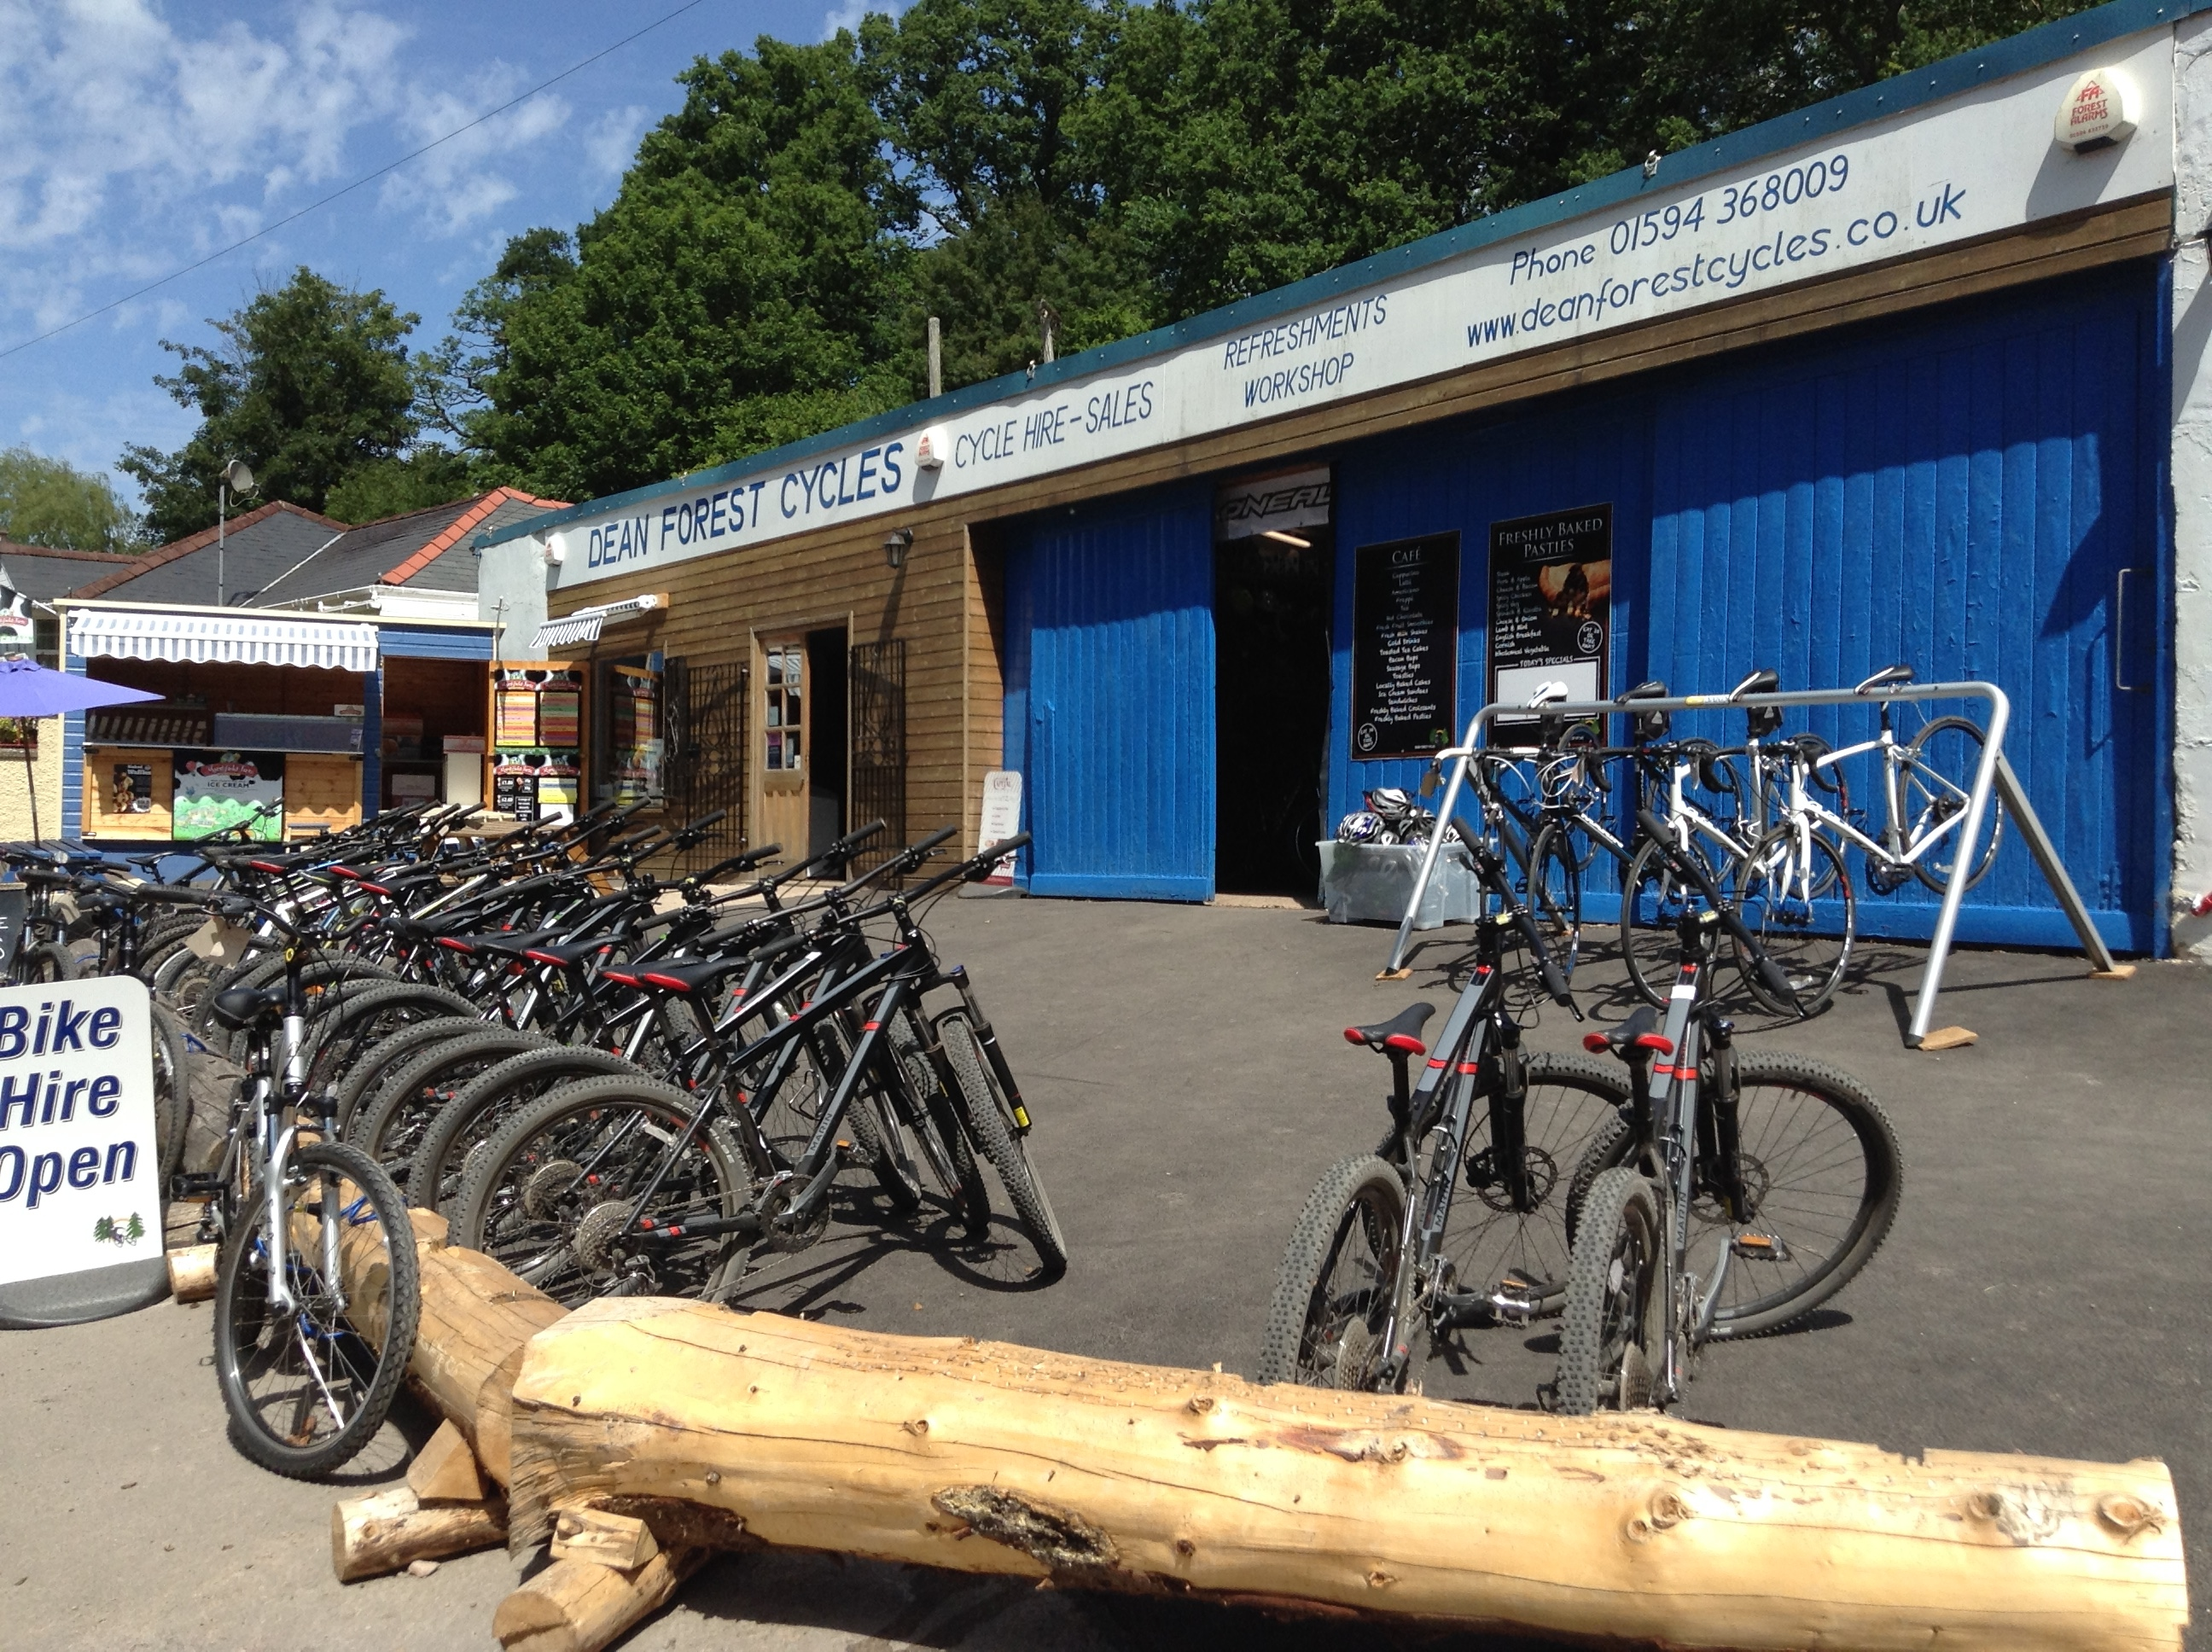 dean forest cycles shop front